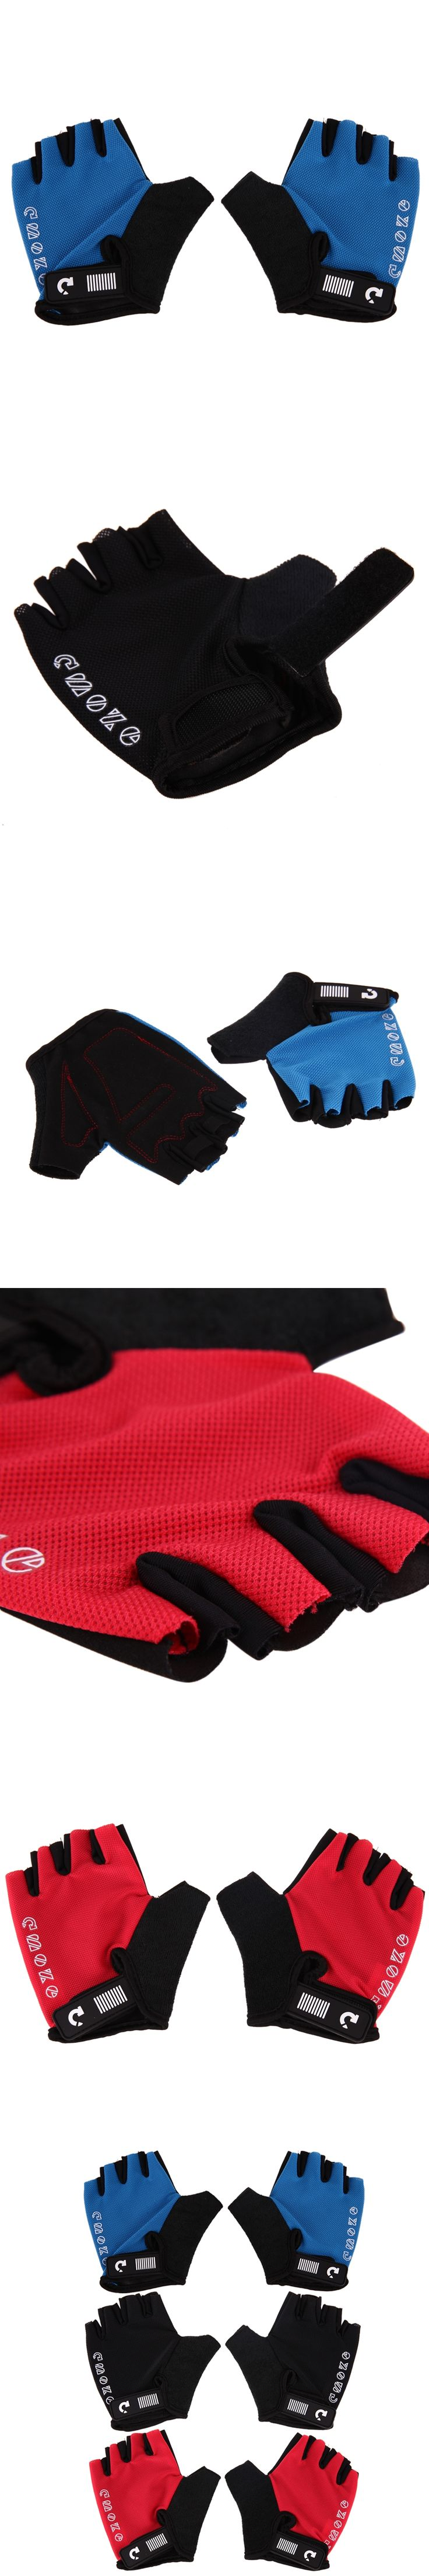 Breathing Anti Skid Cycling Glove Padded Half Finger Glove MTB Mountain Bicycle Gloves Men Sports Cycling Equipment